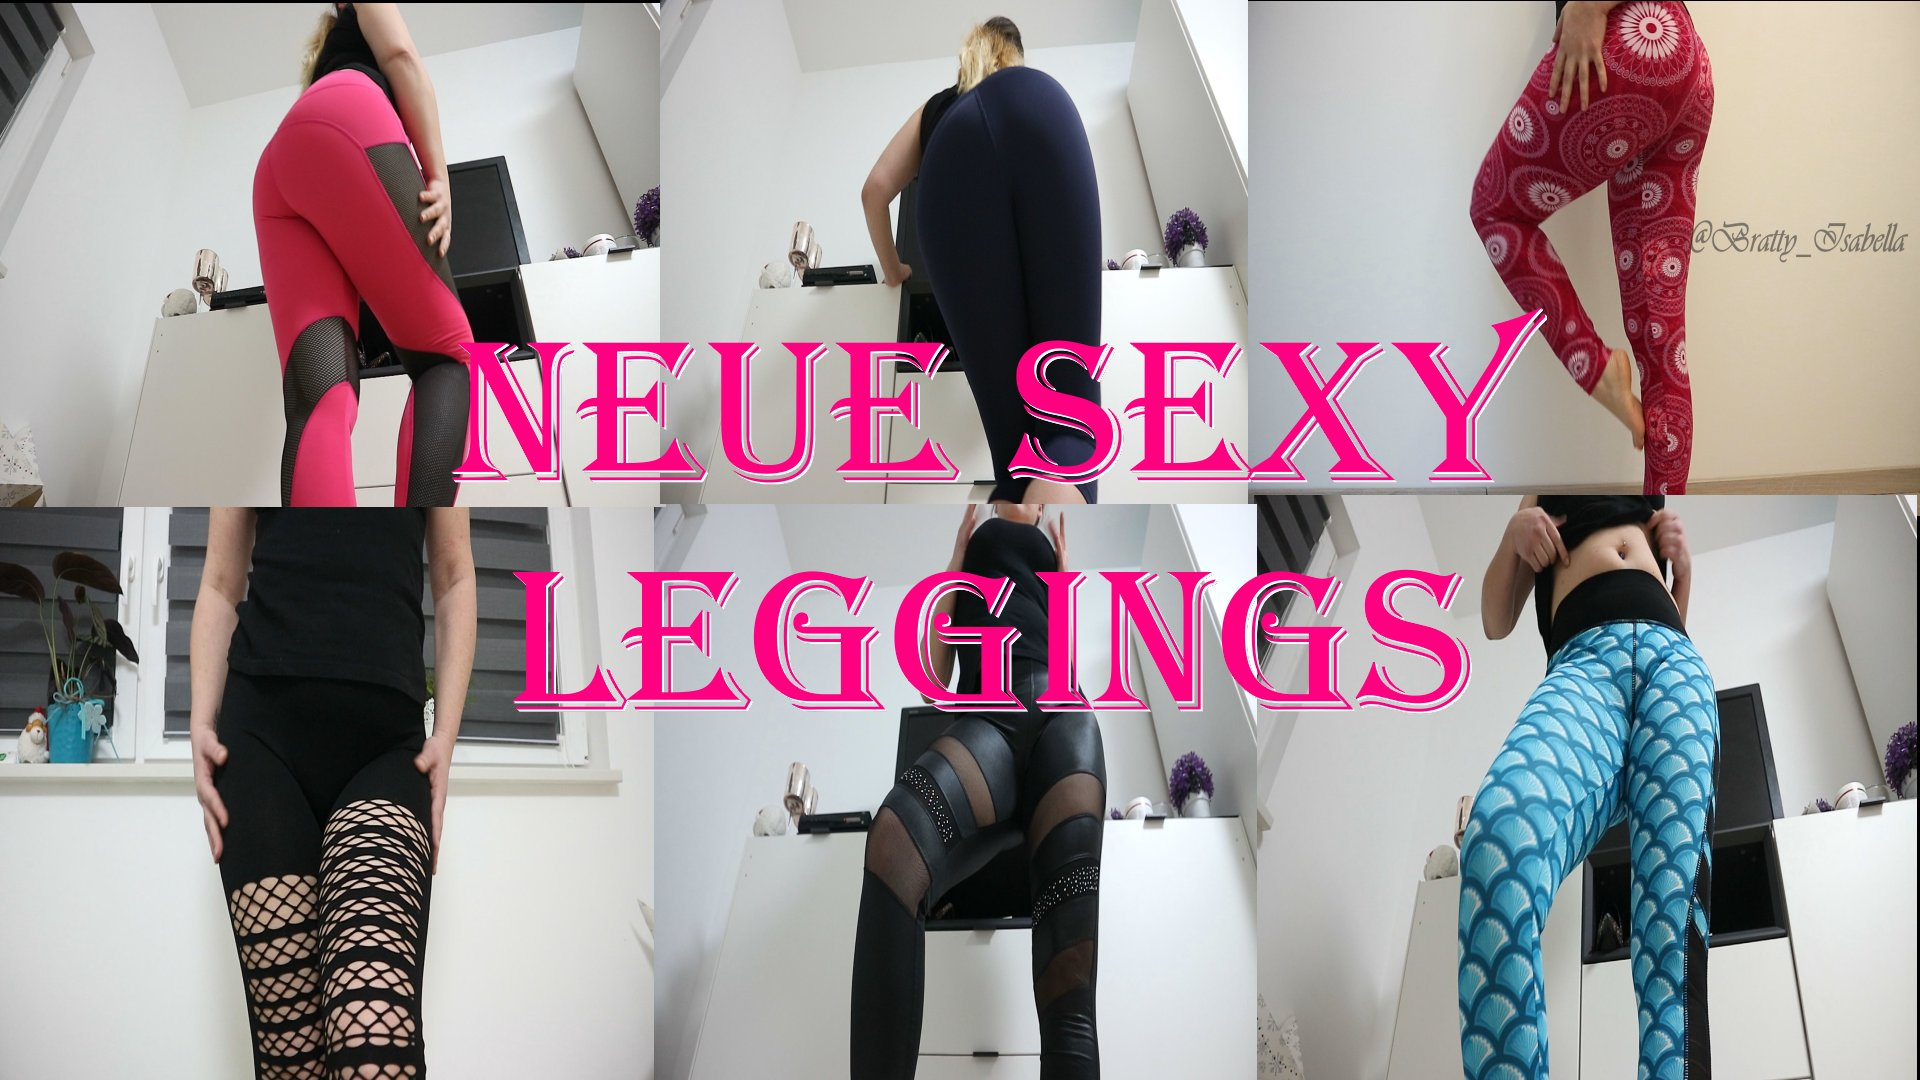 Neue sexy Leggings!